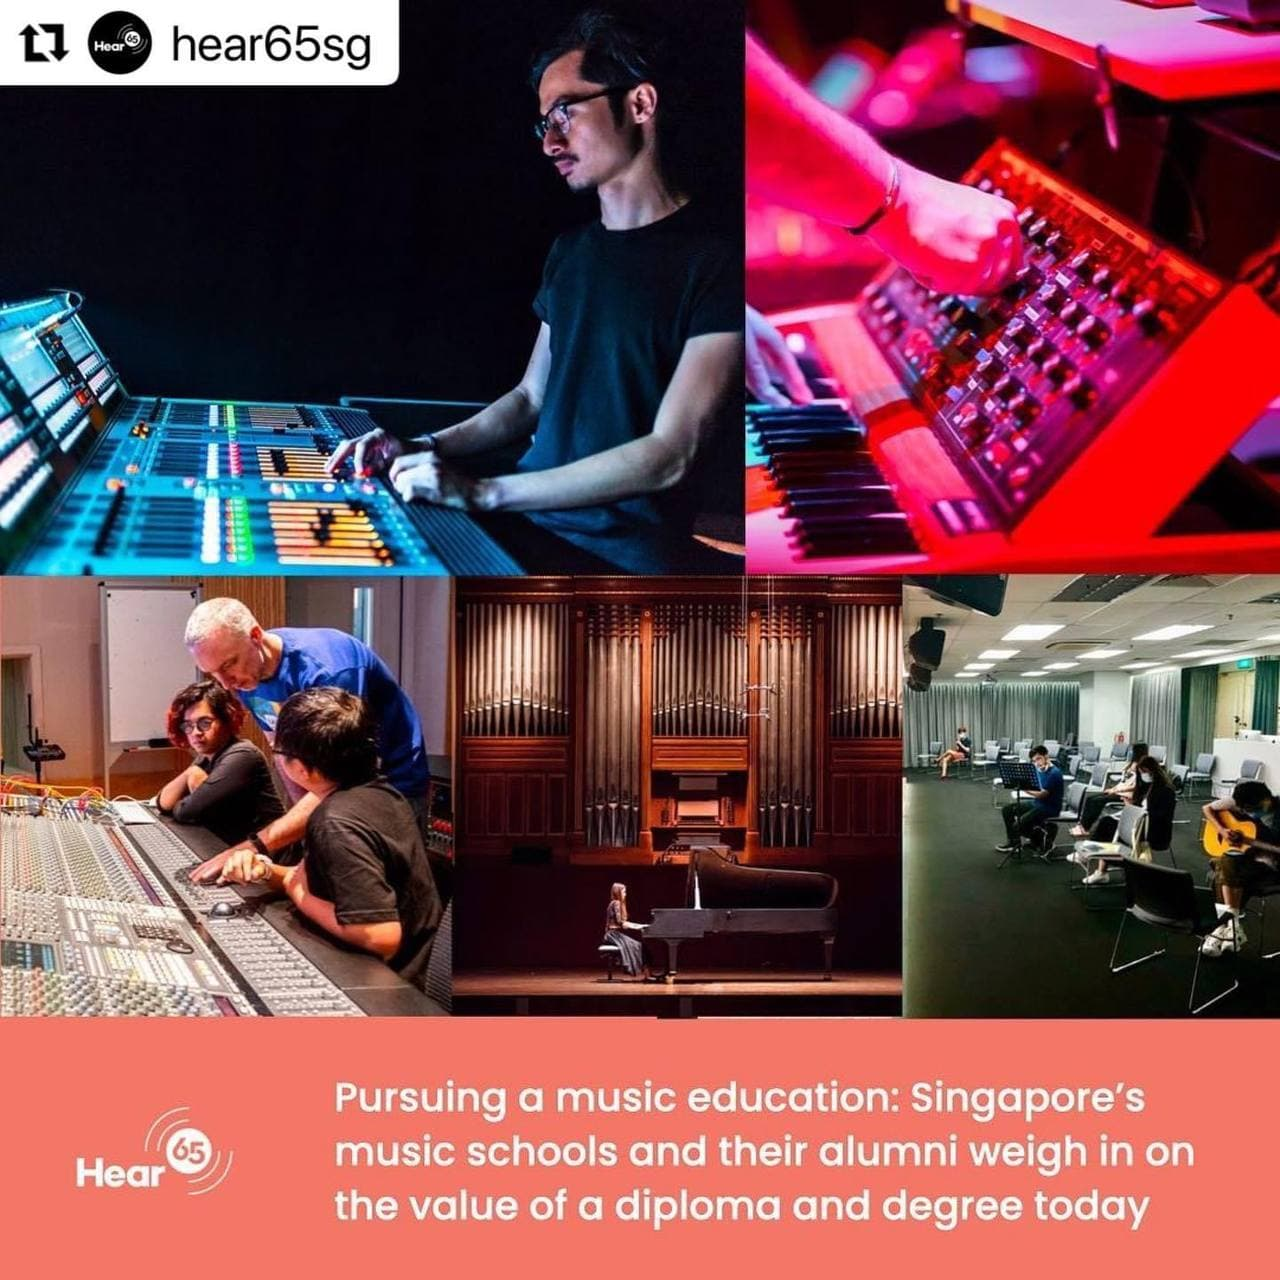 Special feature on Hear65sg